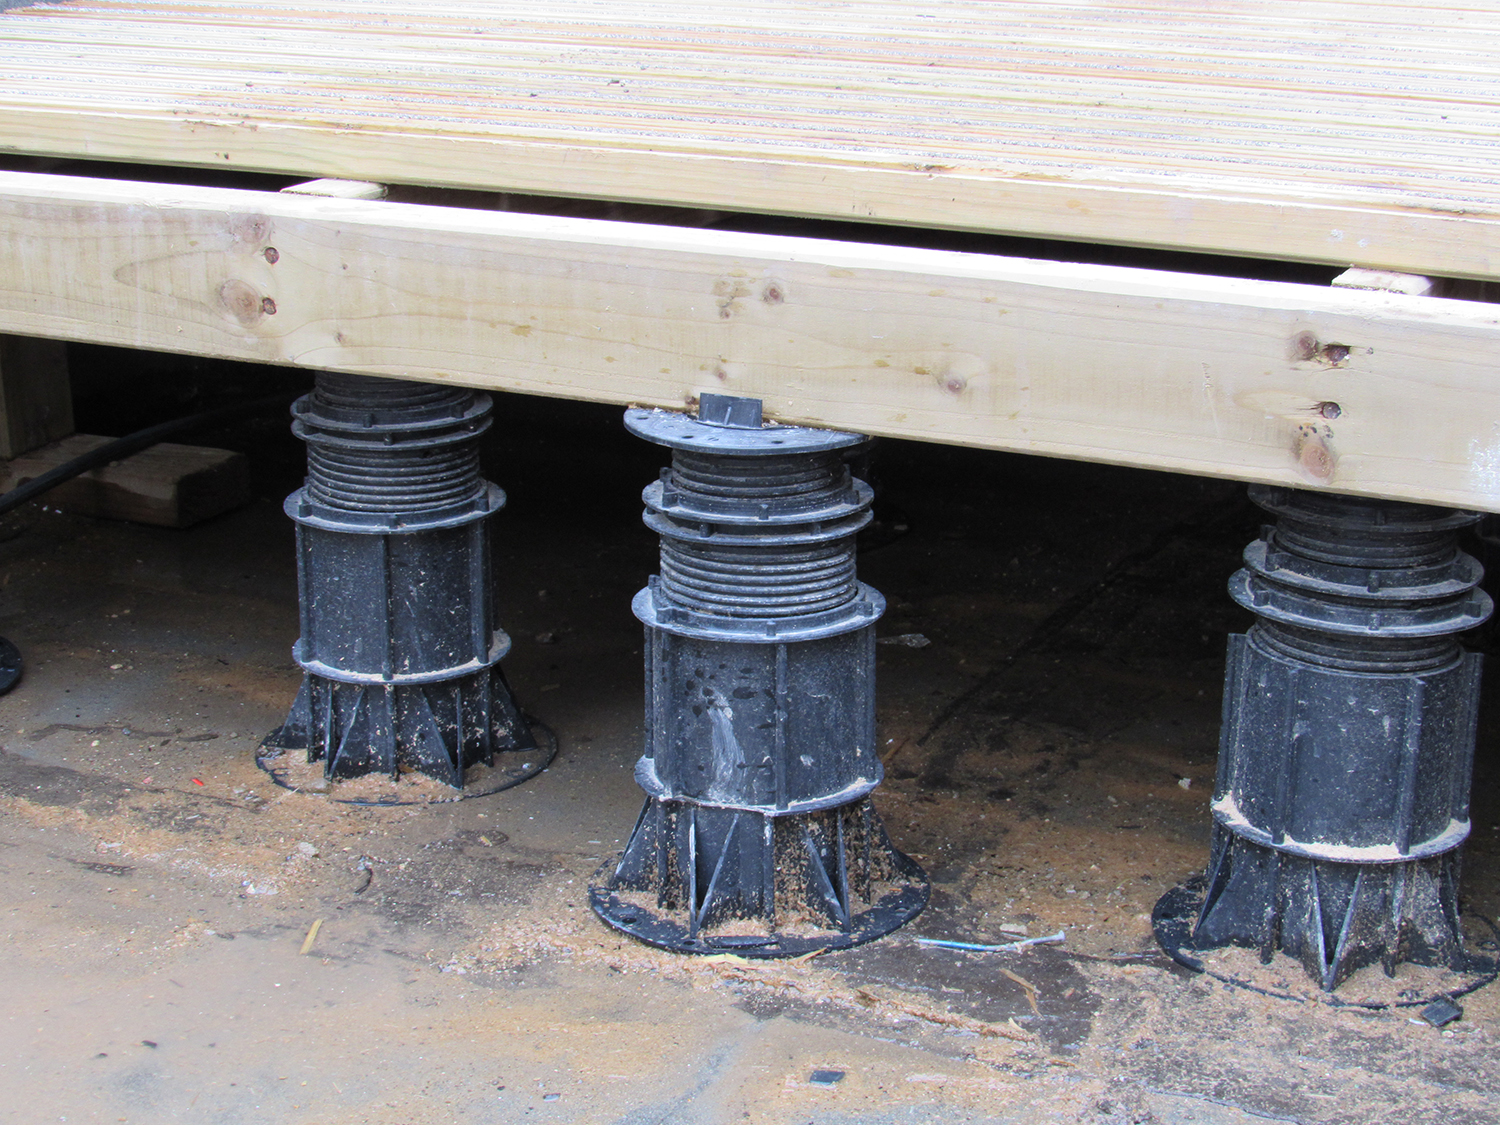 Pedestals for paving and timber decking. Adjustable pedestals and paving support pads